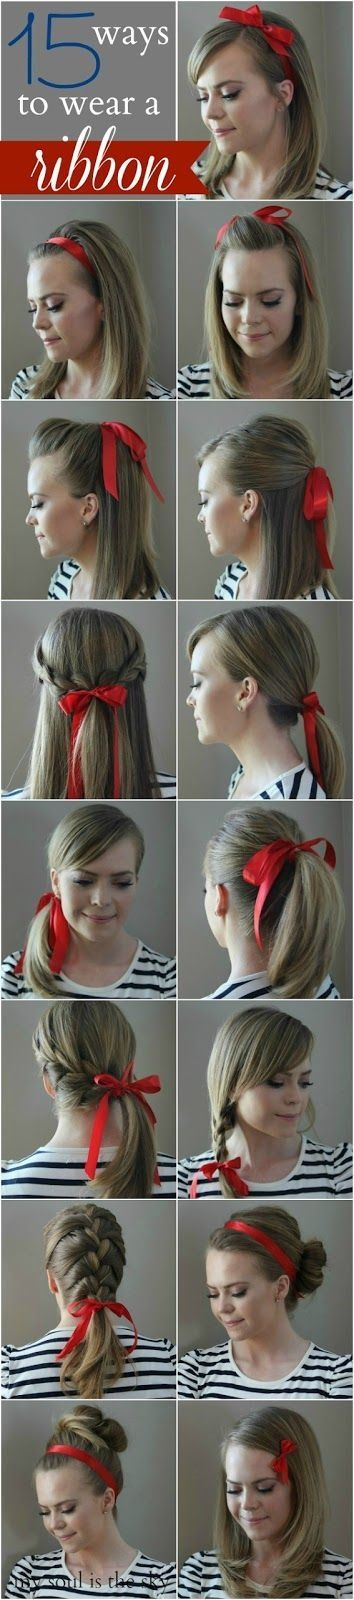 15 Ways To Wear A Ribbon Pictures, Photos, and Images for Facebook, Tumblr, Pinterest, and Twitter